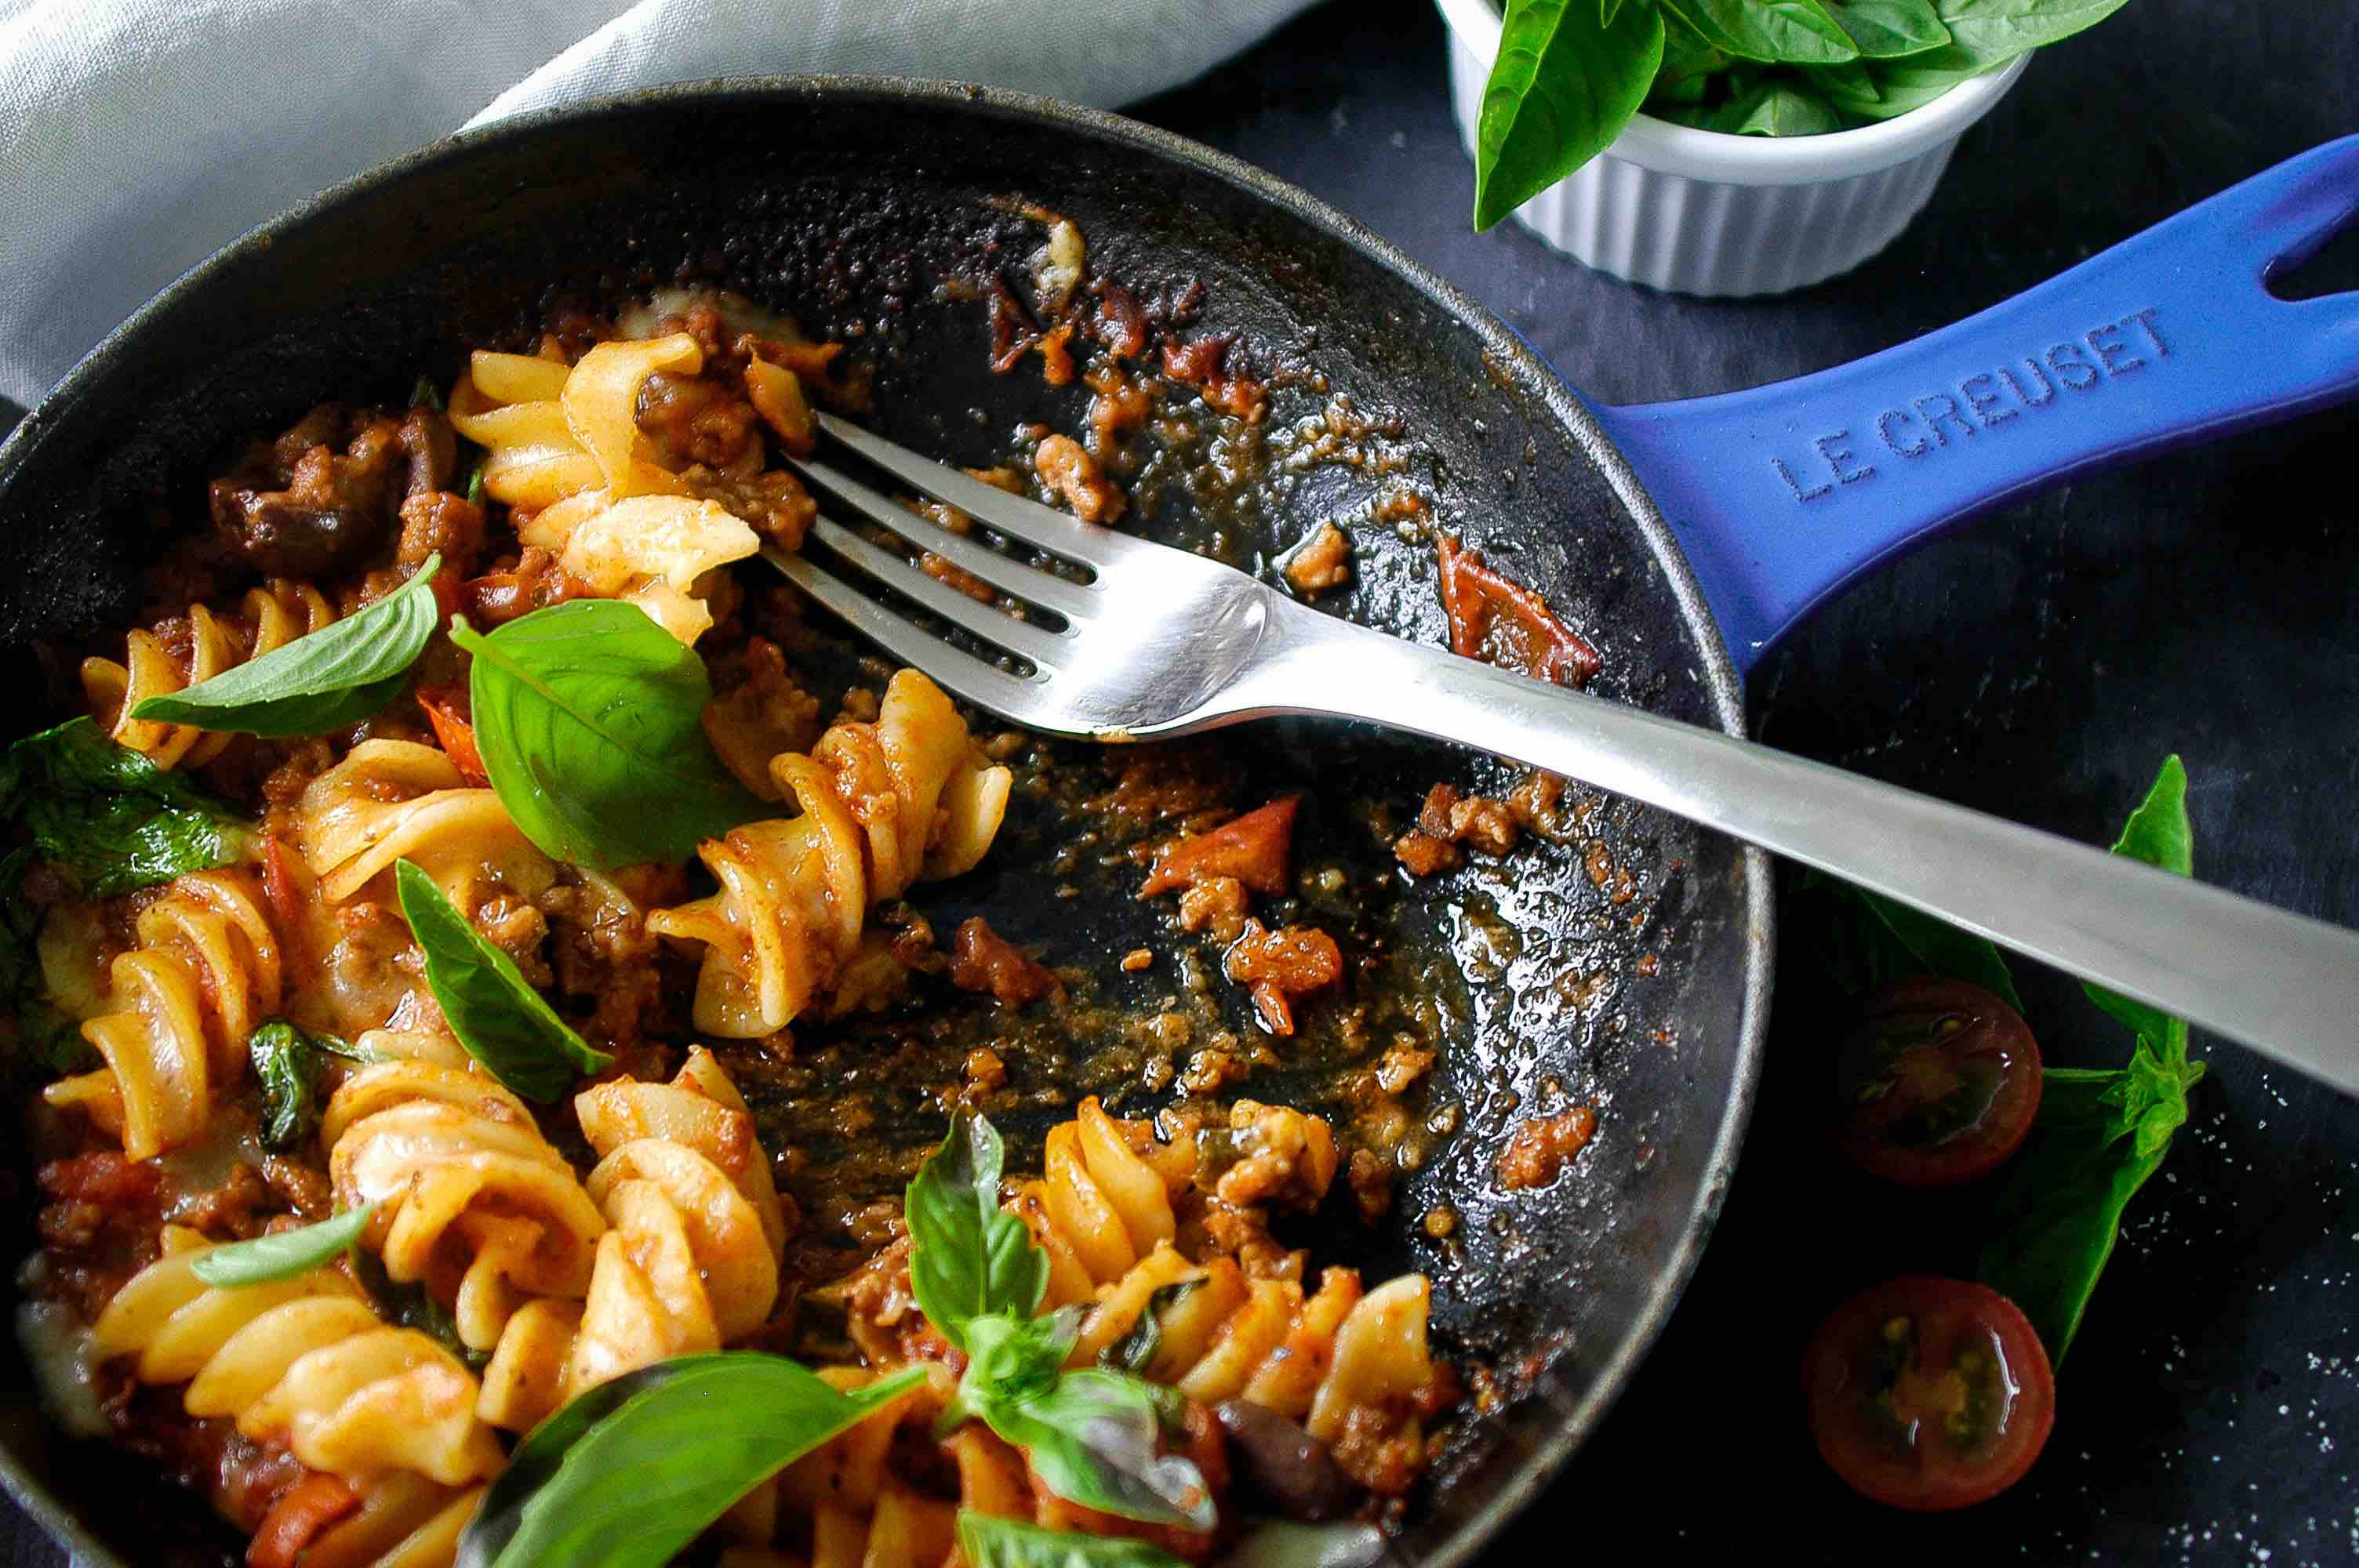 Minimum effort, maximum reward with this delicious one pan pasta!